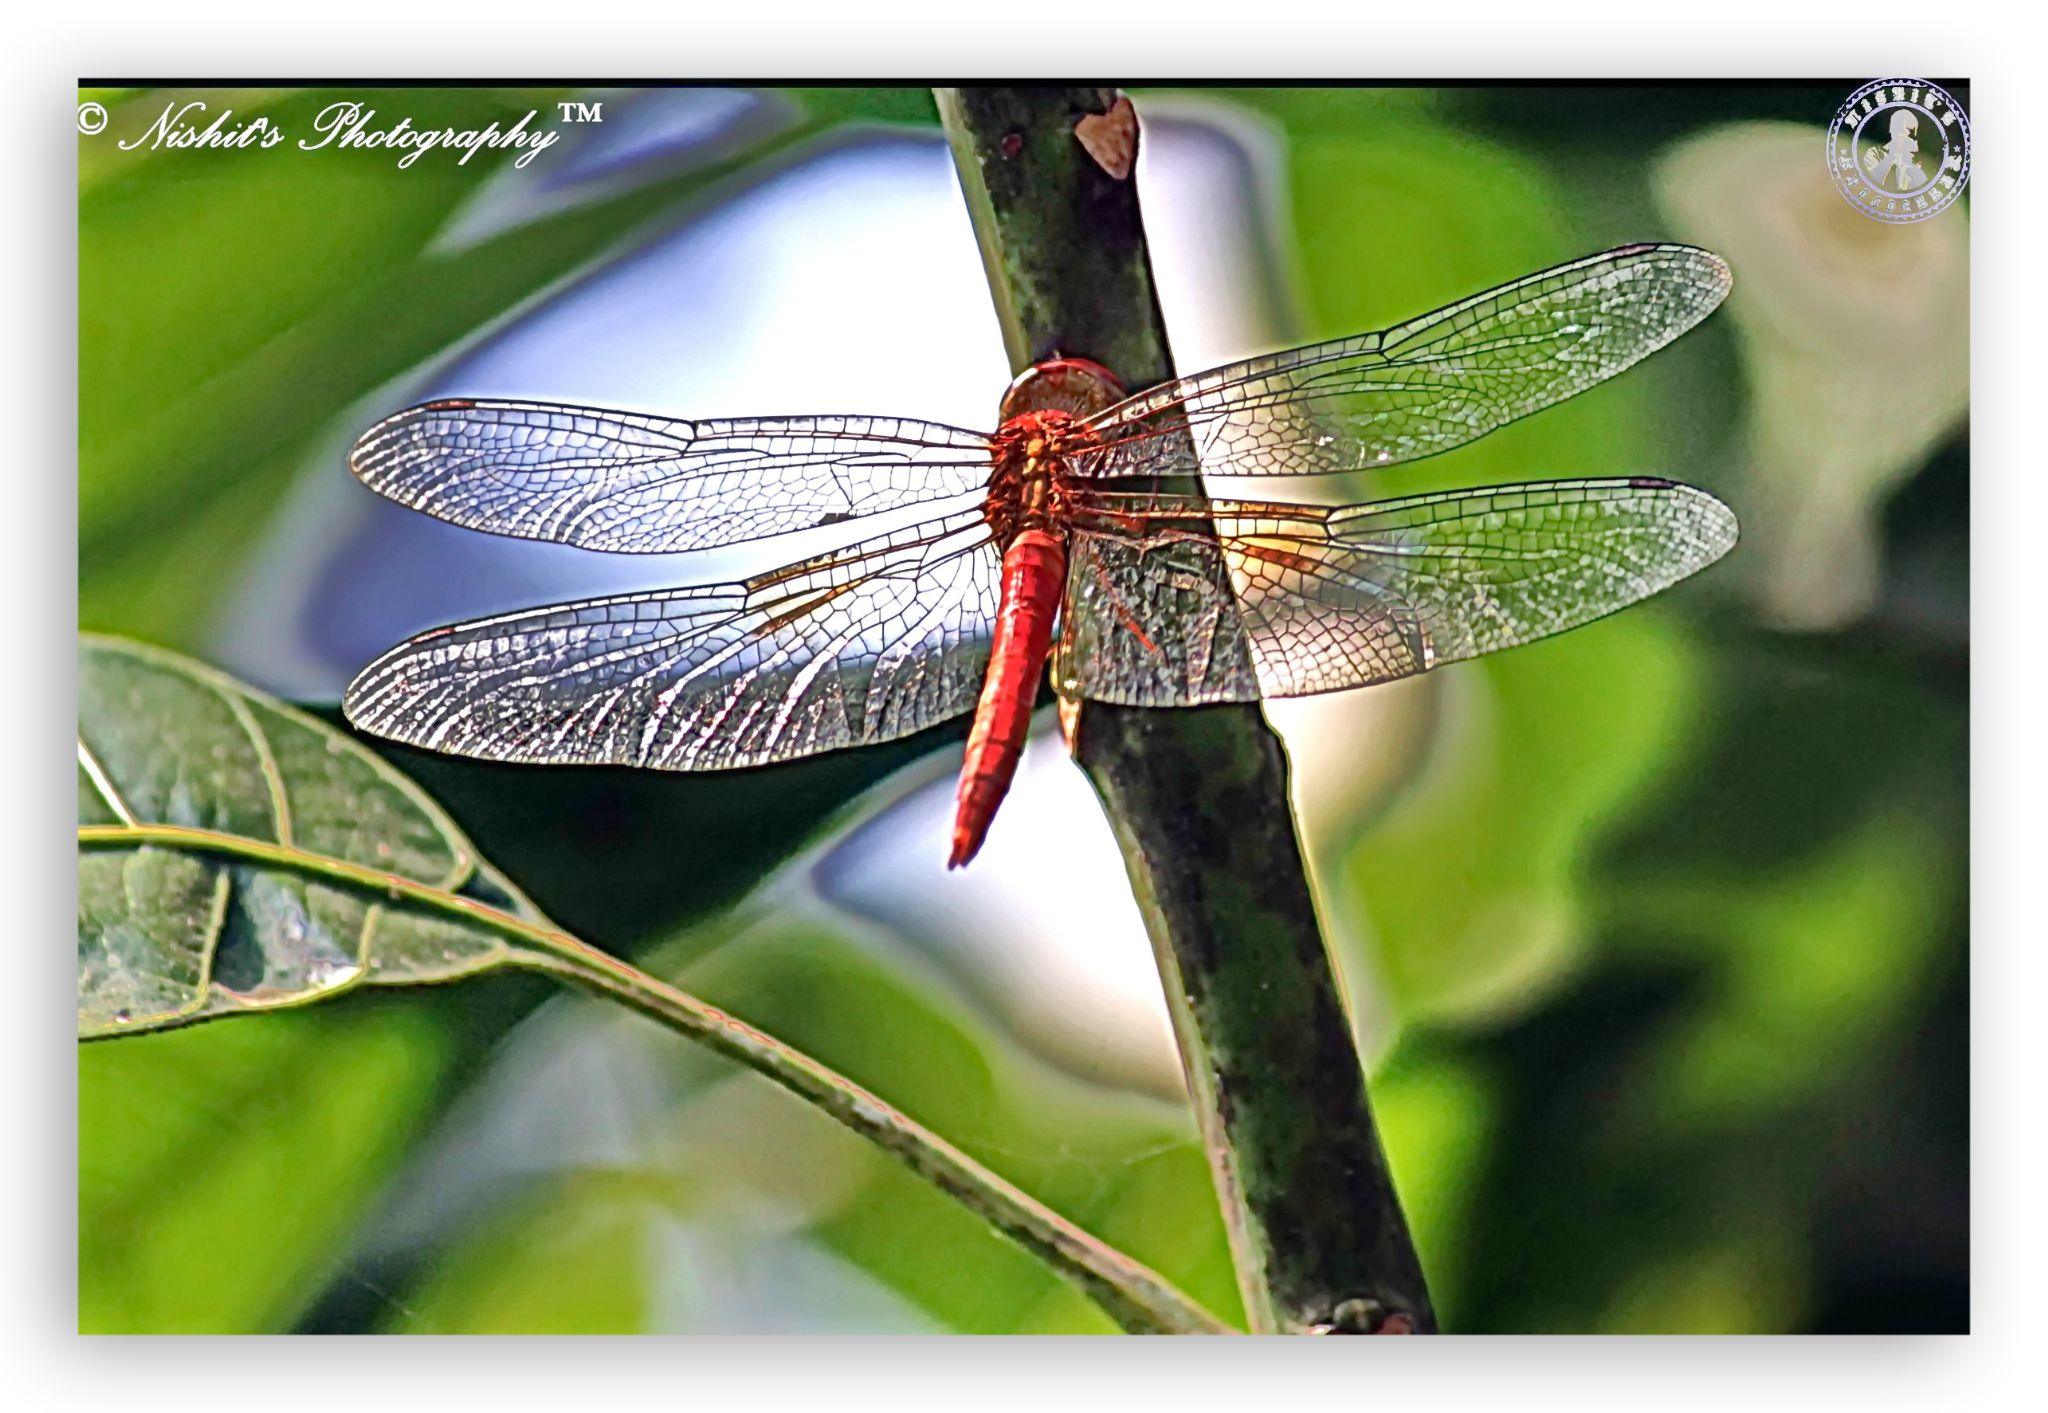 The Dragonfly by Nishit Dey